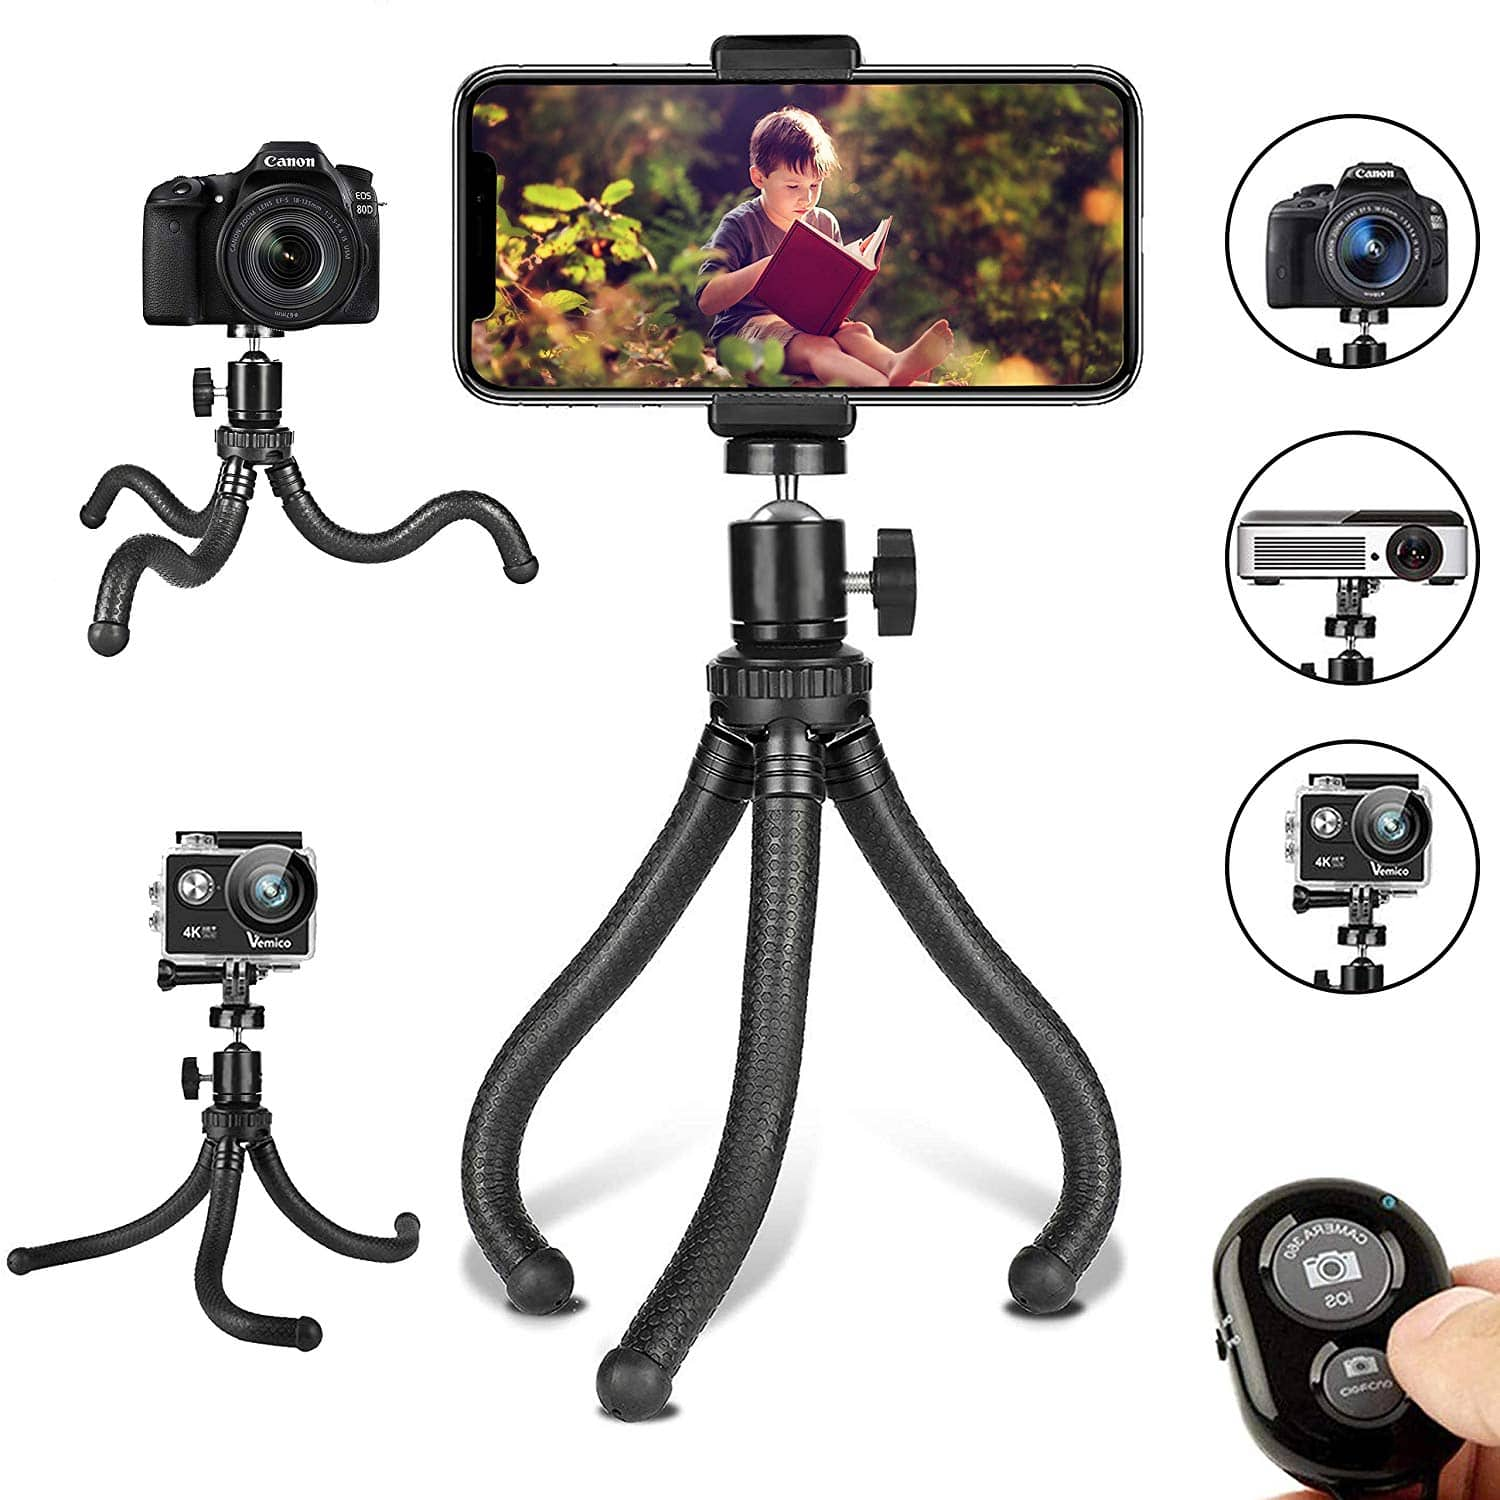 Flexible Cell Phone Tripod Adjustable with Wireless Remote and Universal Clip 360° Rotating - Amazon $7.94AC